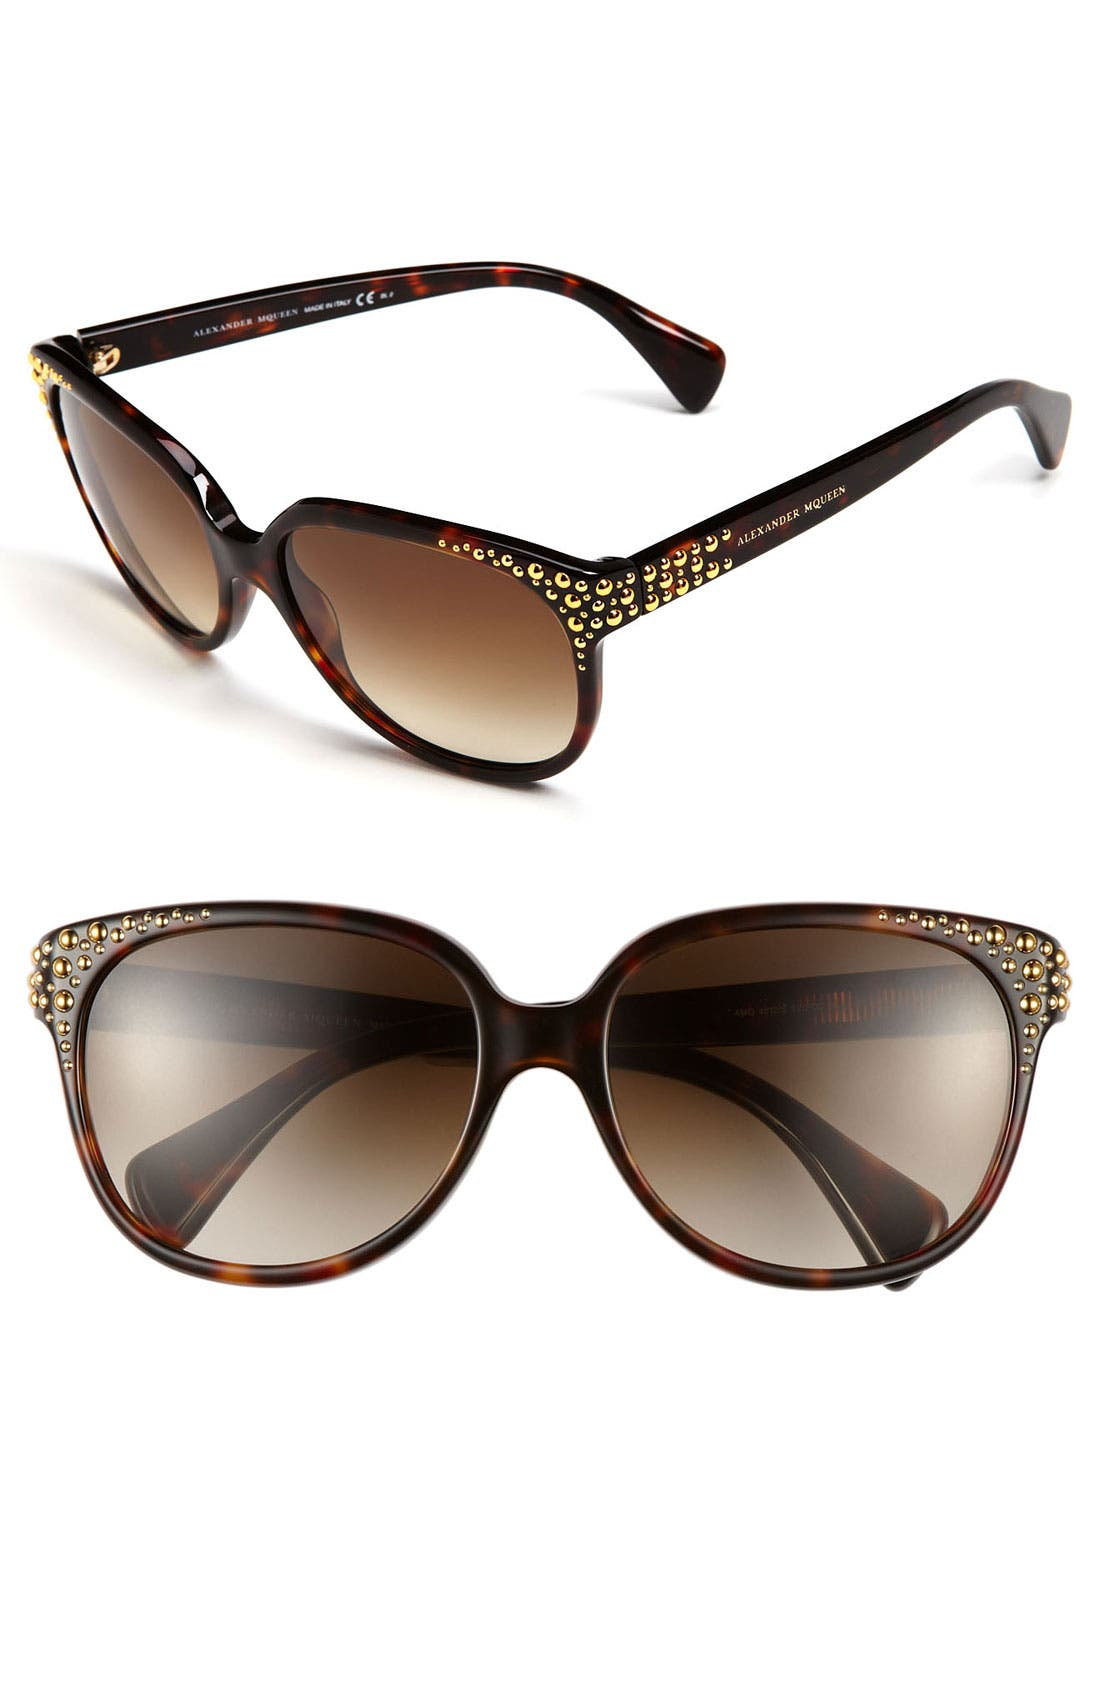 Main Image - Alexander McQueen 58mm Studded Retro Sunglasses